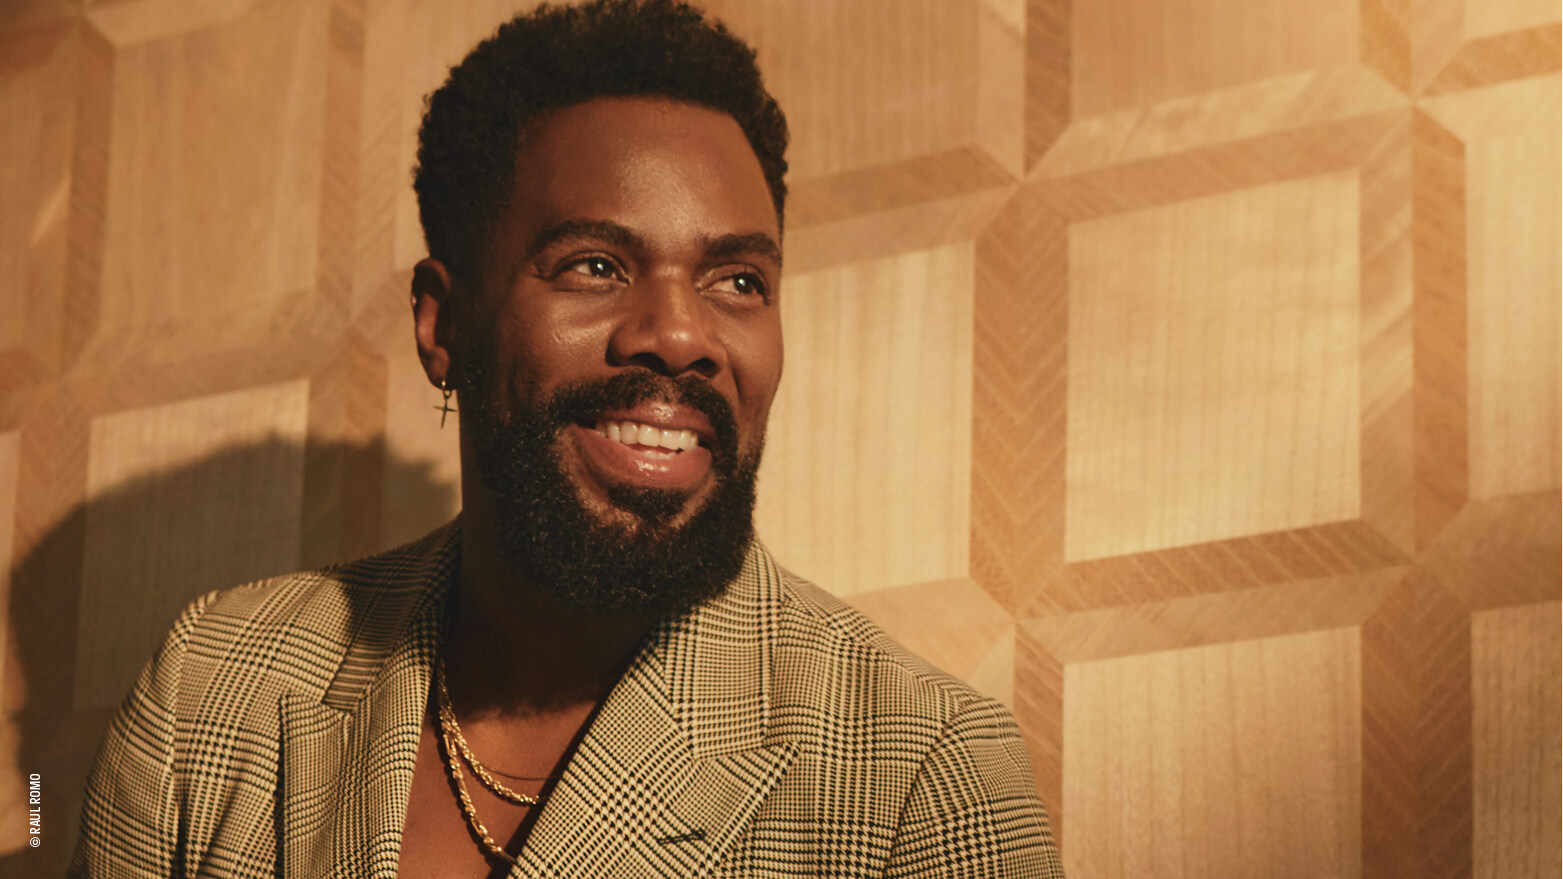 Candyman Star Colman Domingo on Being Out and Ready for His Close-Up